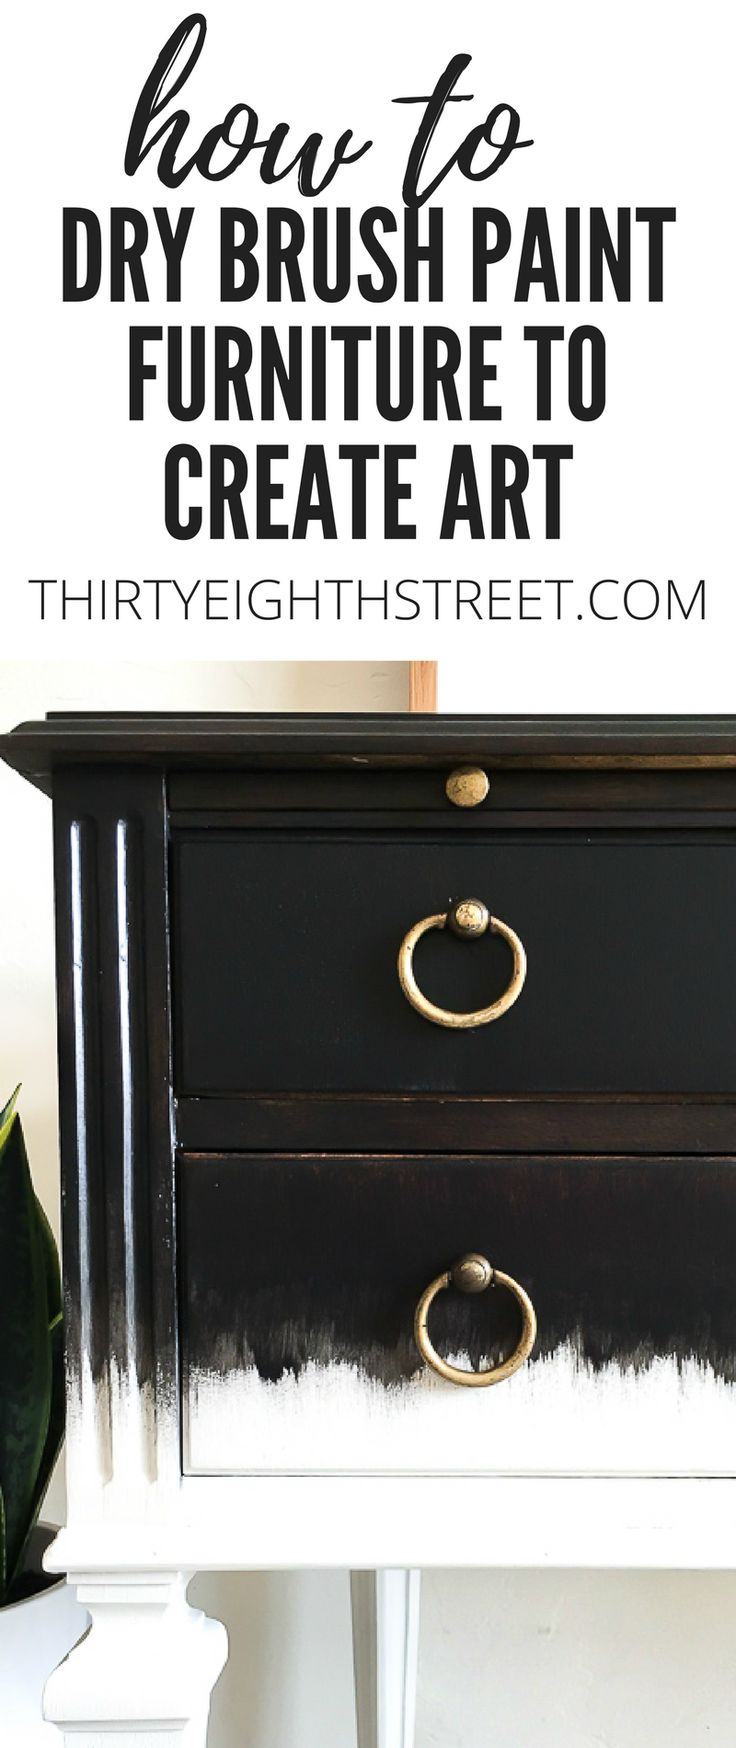 How To Dry Brush Paint Furniture To Create Furniture Art. Dry Brushing Painting Technique. Create Unique Furniture By Dry Brushing Paint. Black and White Furniture Ideas. Painted Desk. Black and White Desk. Painting Technique For Furniture. #drybrush #drybrushing #drybrushpaint #painteddesk #blackandwhite #furnitureart